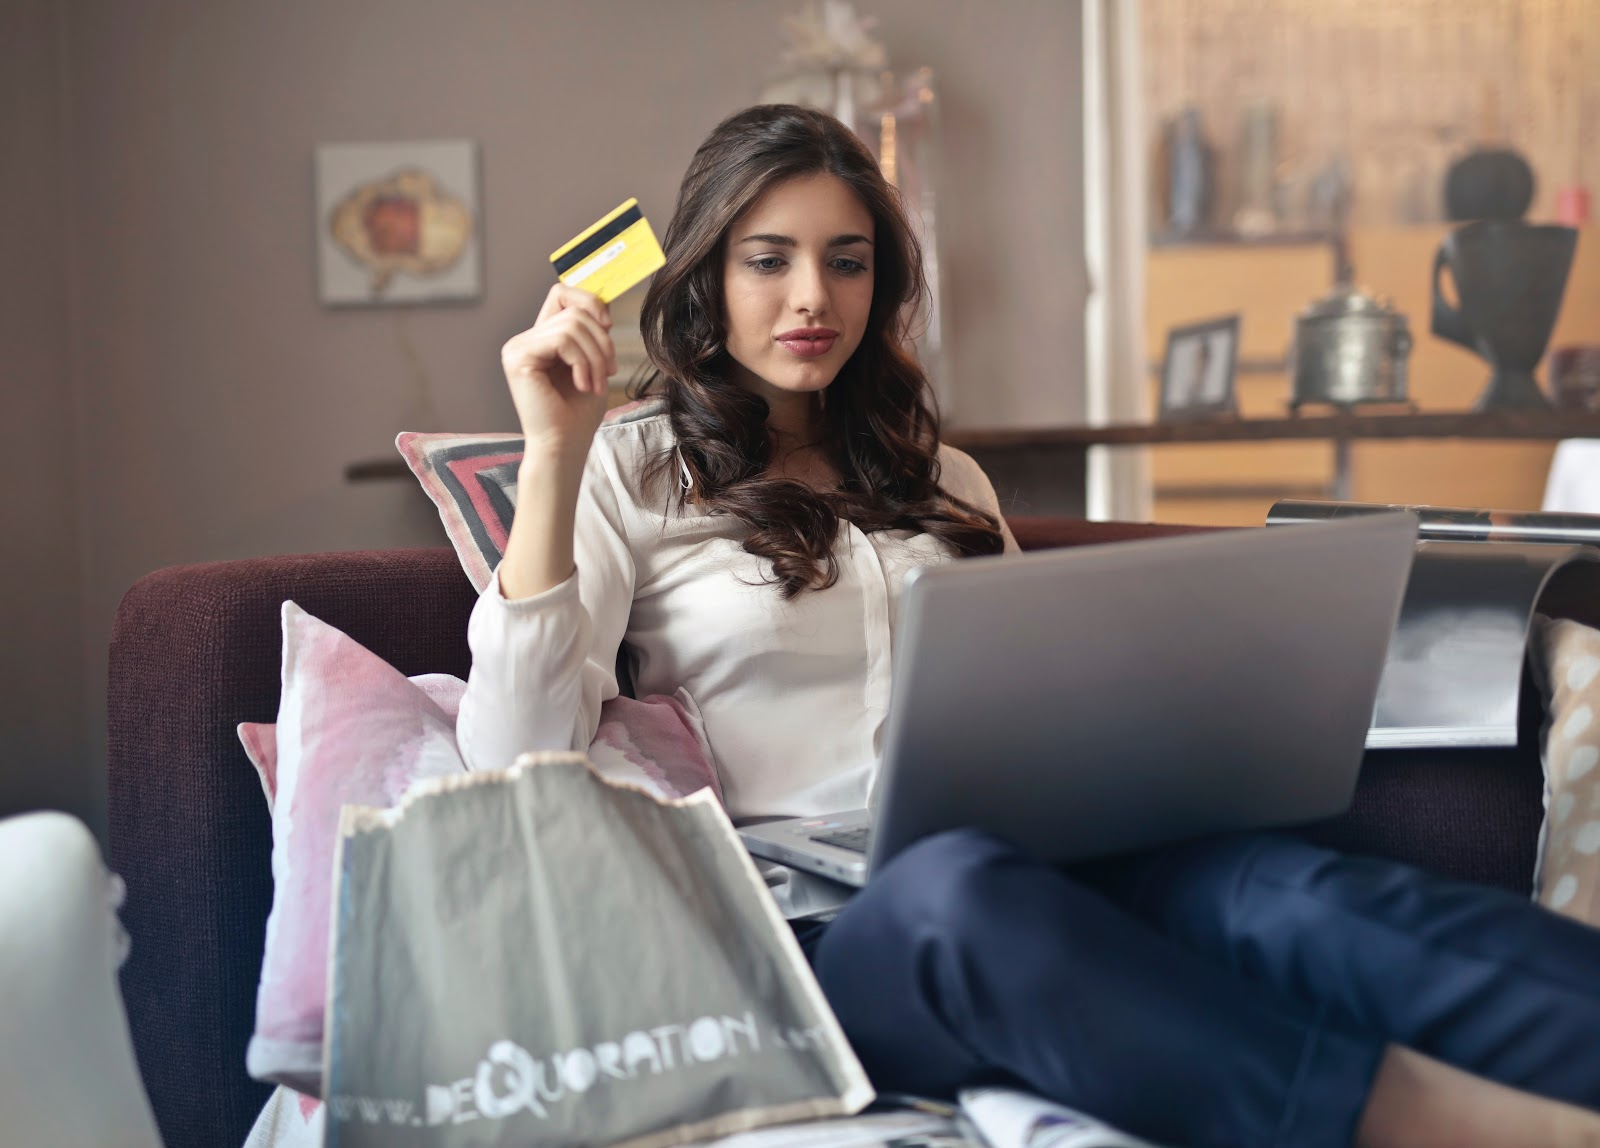 A woman holds a credit card while looking at a laptop